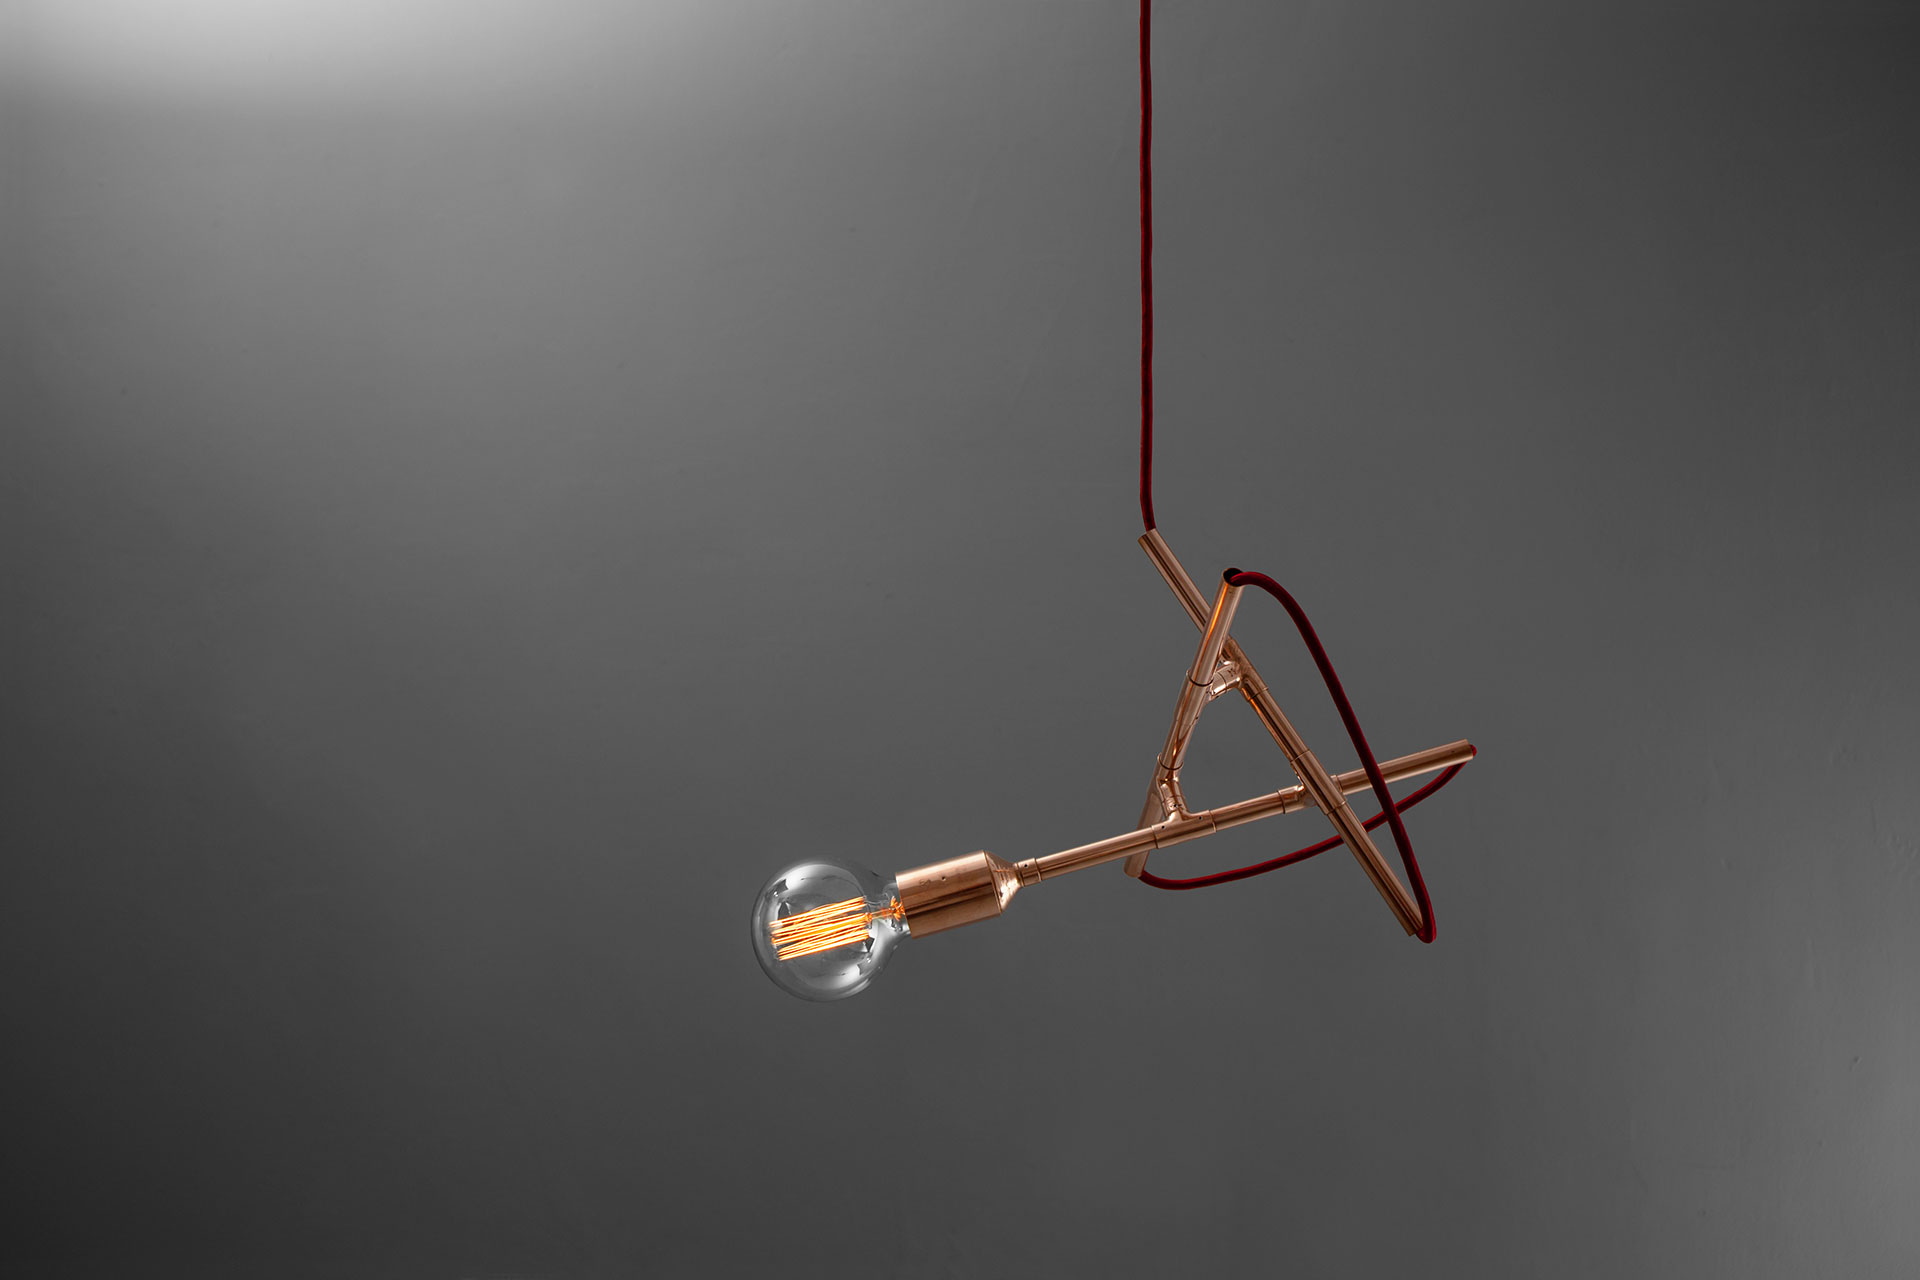 Designers ceiling lamp inspired by mid-century modern style